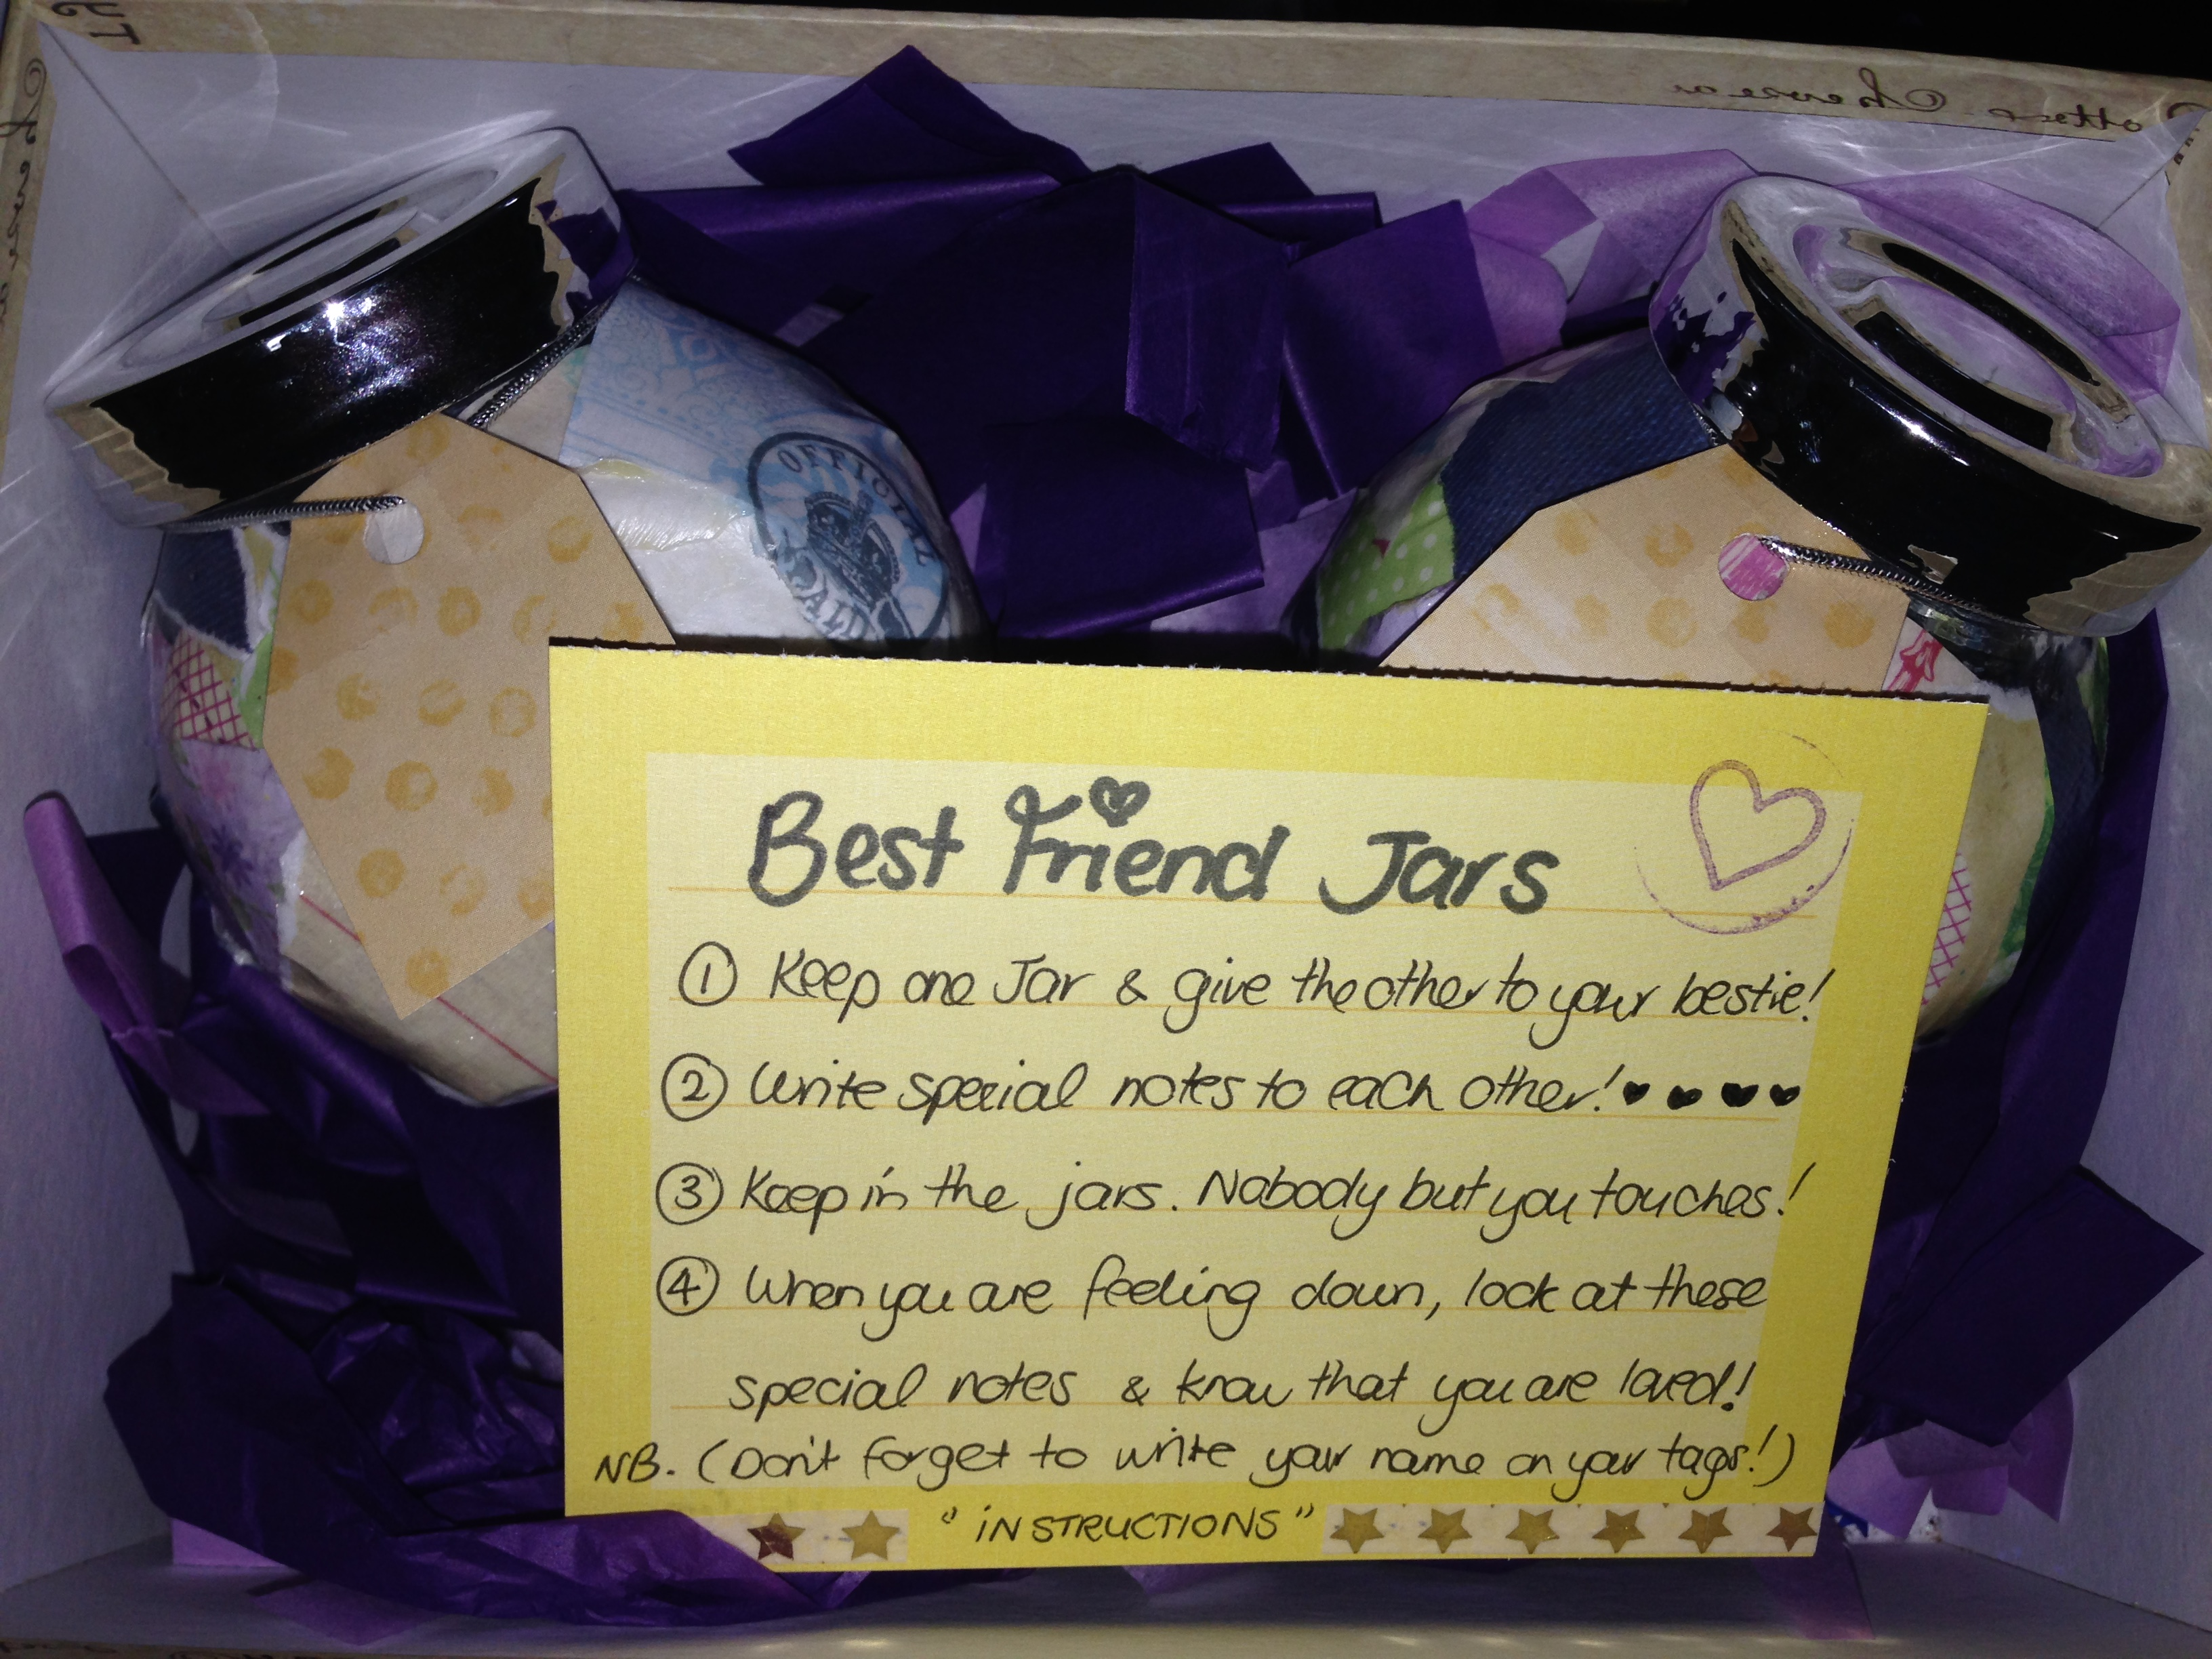 Best Friend Jars <3